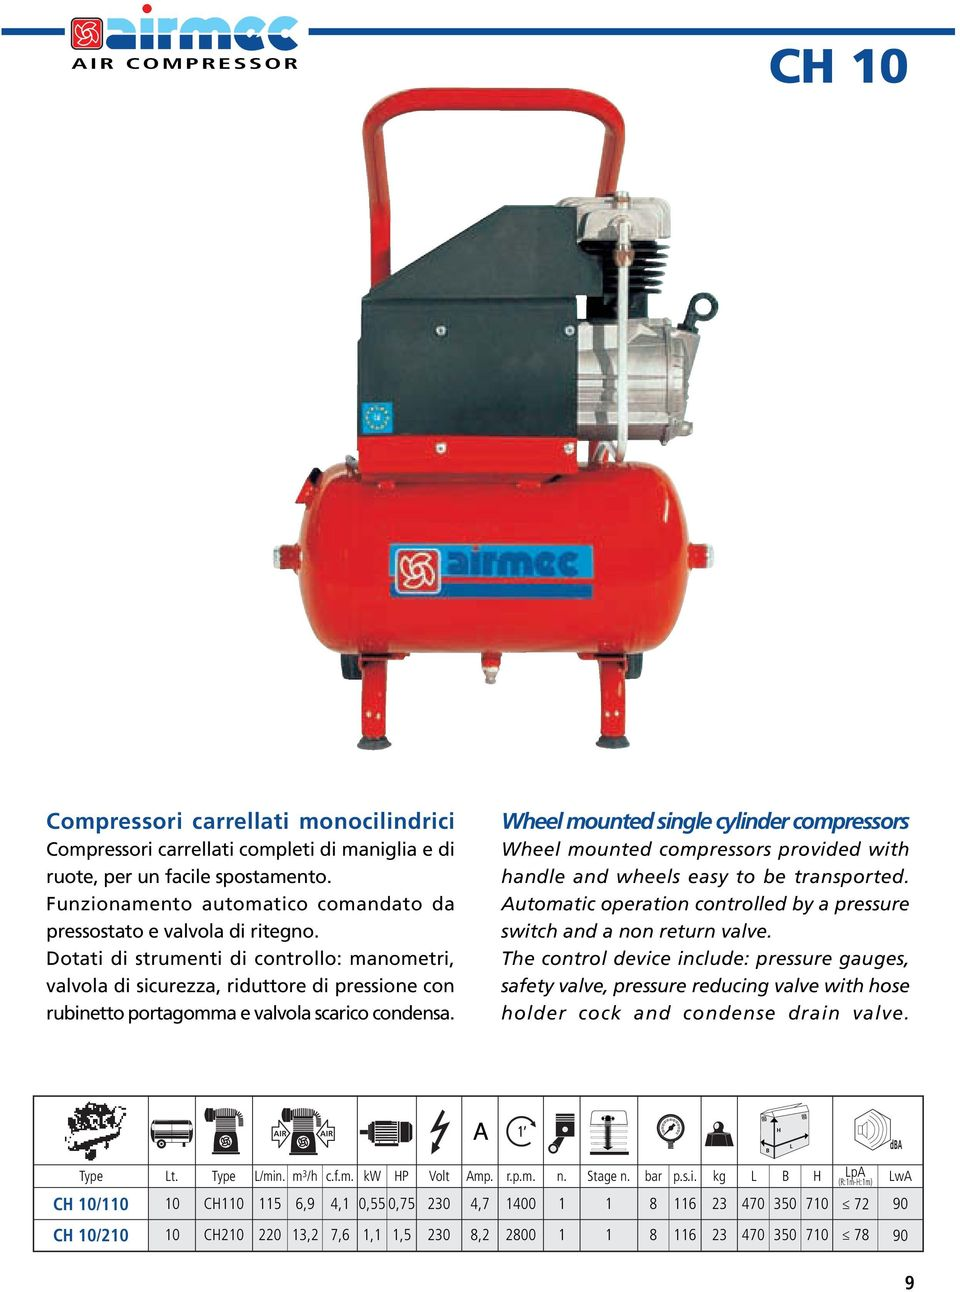 Wheel mounted single cylinder compressors Wheel mounted compressors provided with handle and wheels easy to be transported. Automatic operation controlled by a pressure switch and a non return valve.